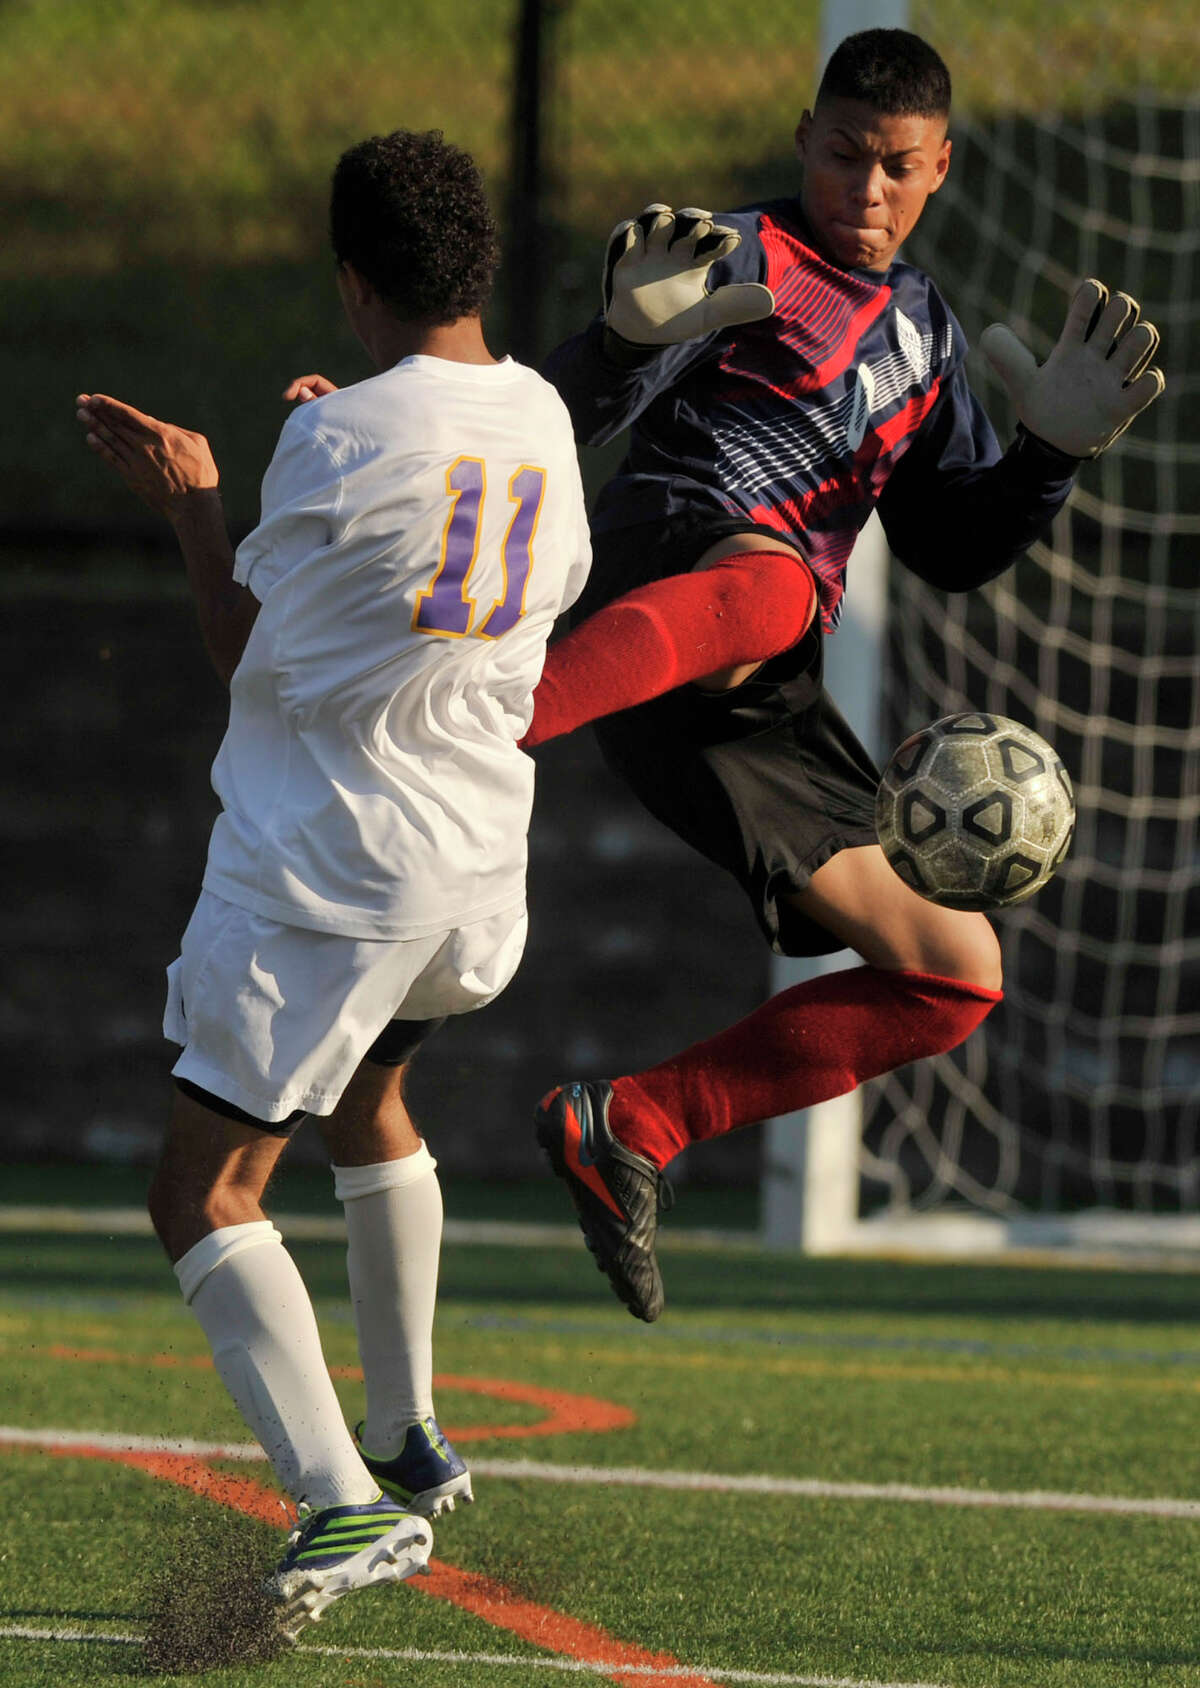 Westhill's Daniel Sasnchez and Central goalie Gustavo Herrera collide during their game at Westhill High School in Stamford, Conn., on Tuesday, Oct. 1, 2013. Westhill beat Central, 2-0.